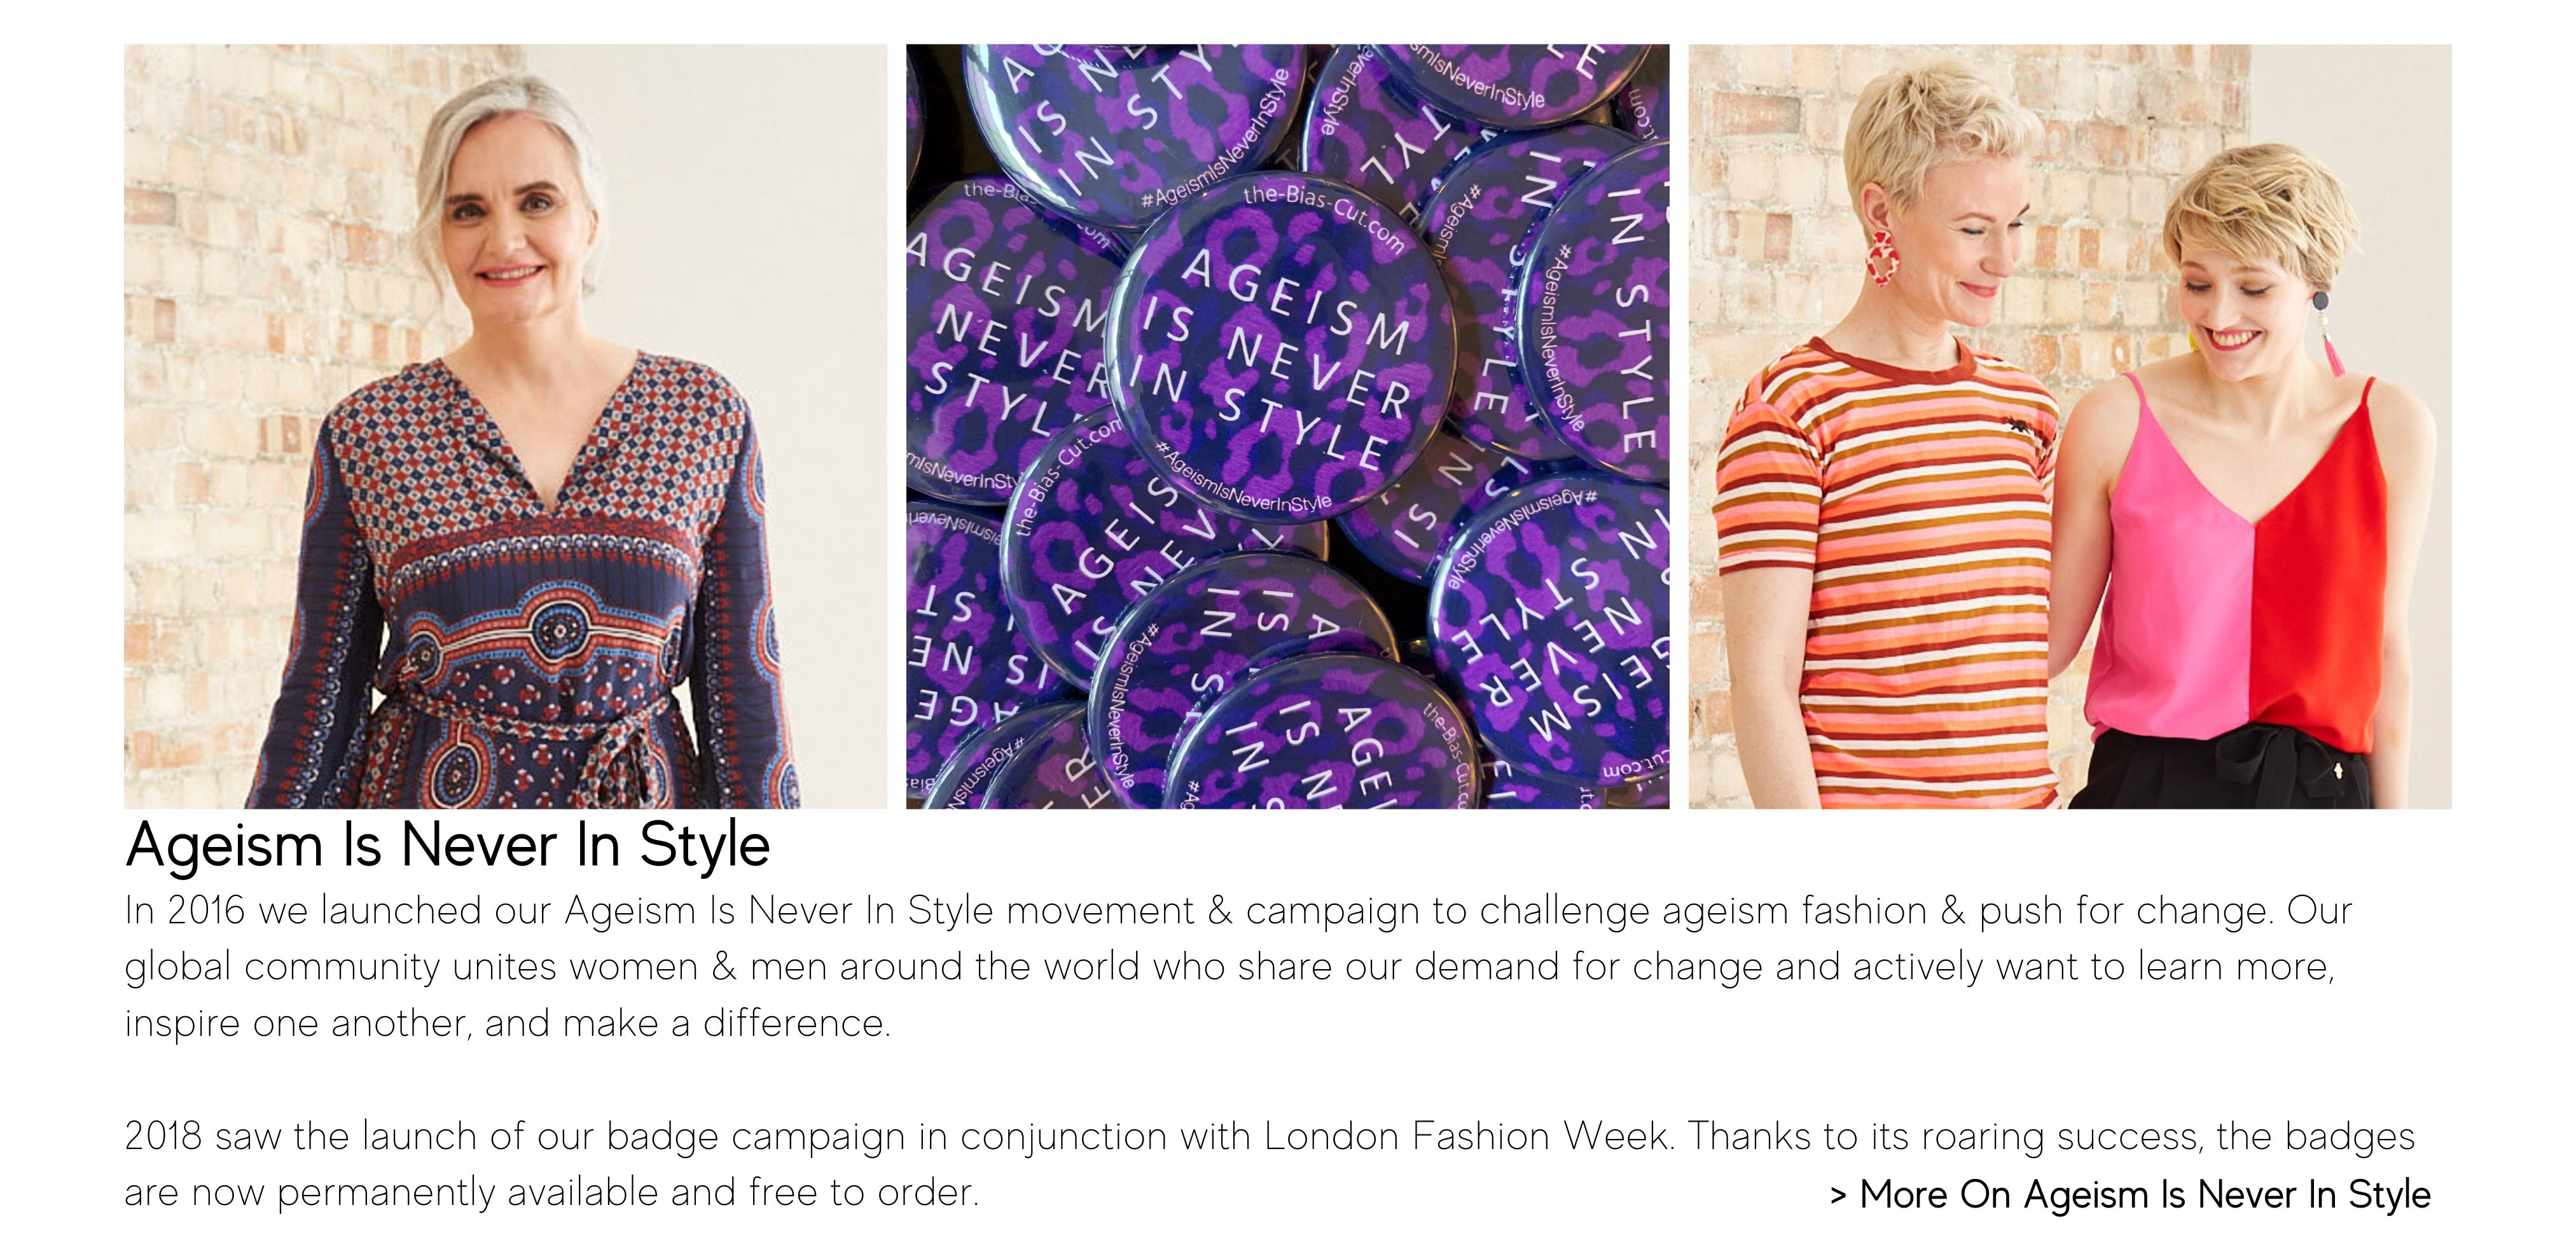 In 2016 we launched our Ageism Is Never In Style movement & campaign to challenge ageism fashion & push for change. Our global community unites women & men around the world who share our demand for change and actively want to learn more, inspire one another, and make a difference.   2018 saw the launch of our badge campaign in conjunction with London Fashion Week. Thanks to its roaring success, the badges are now permanently available and free to order.